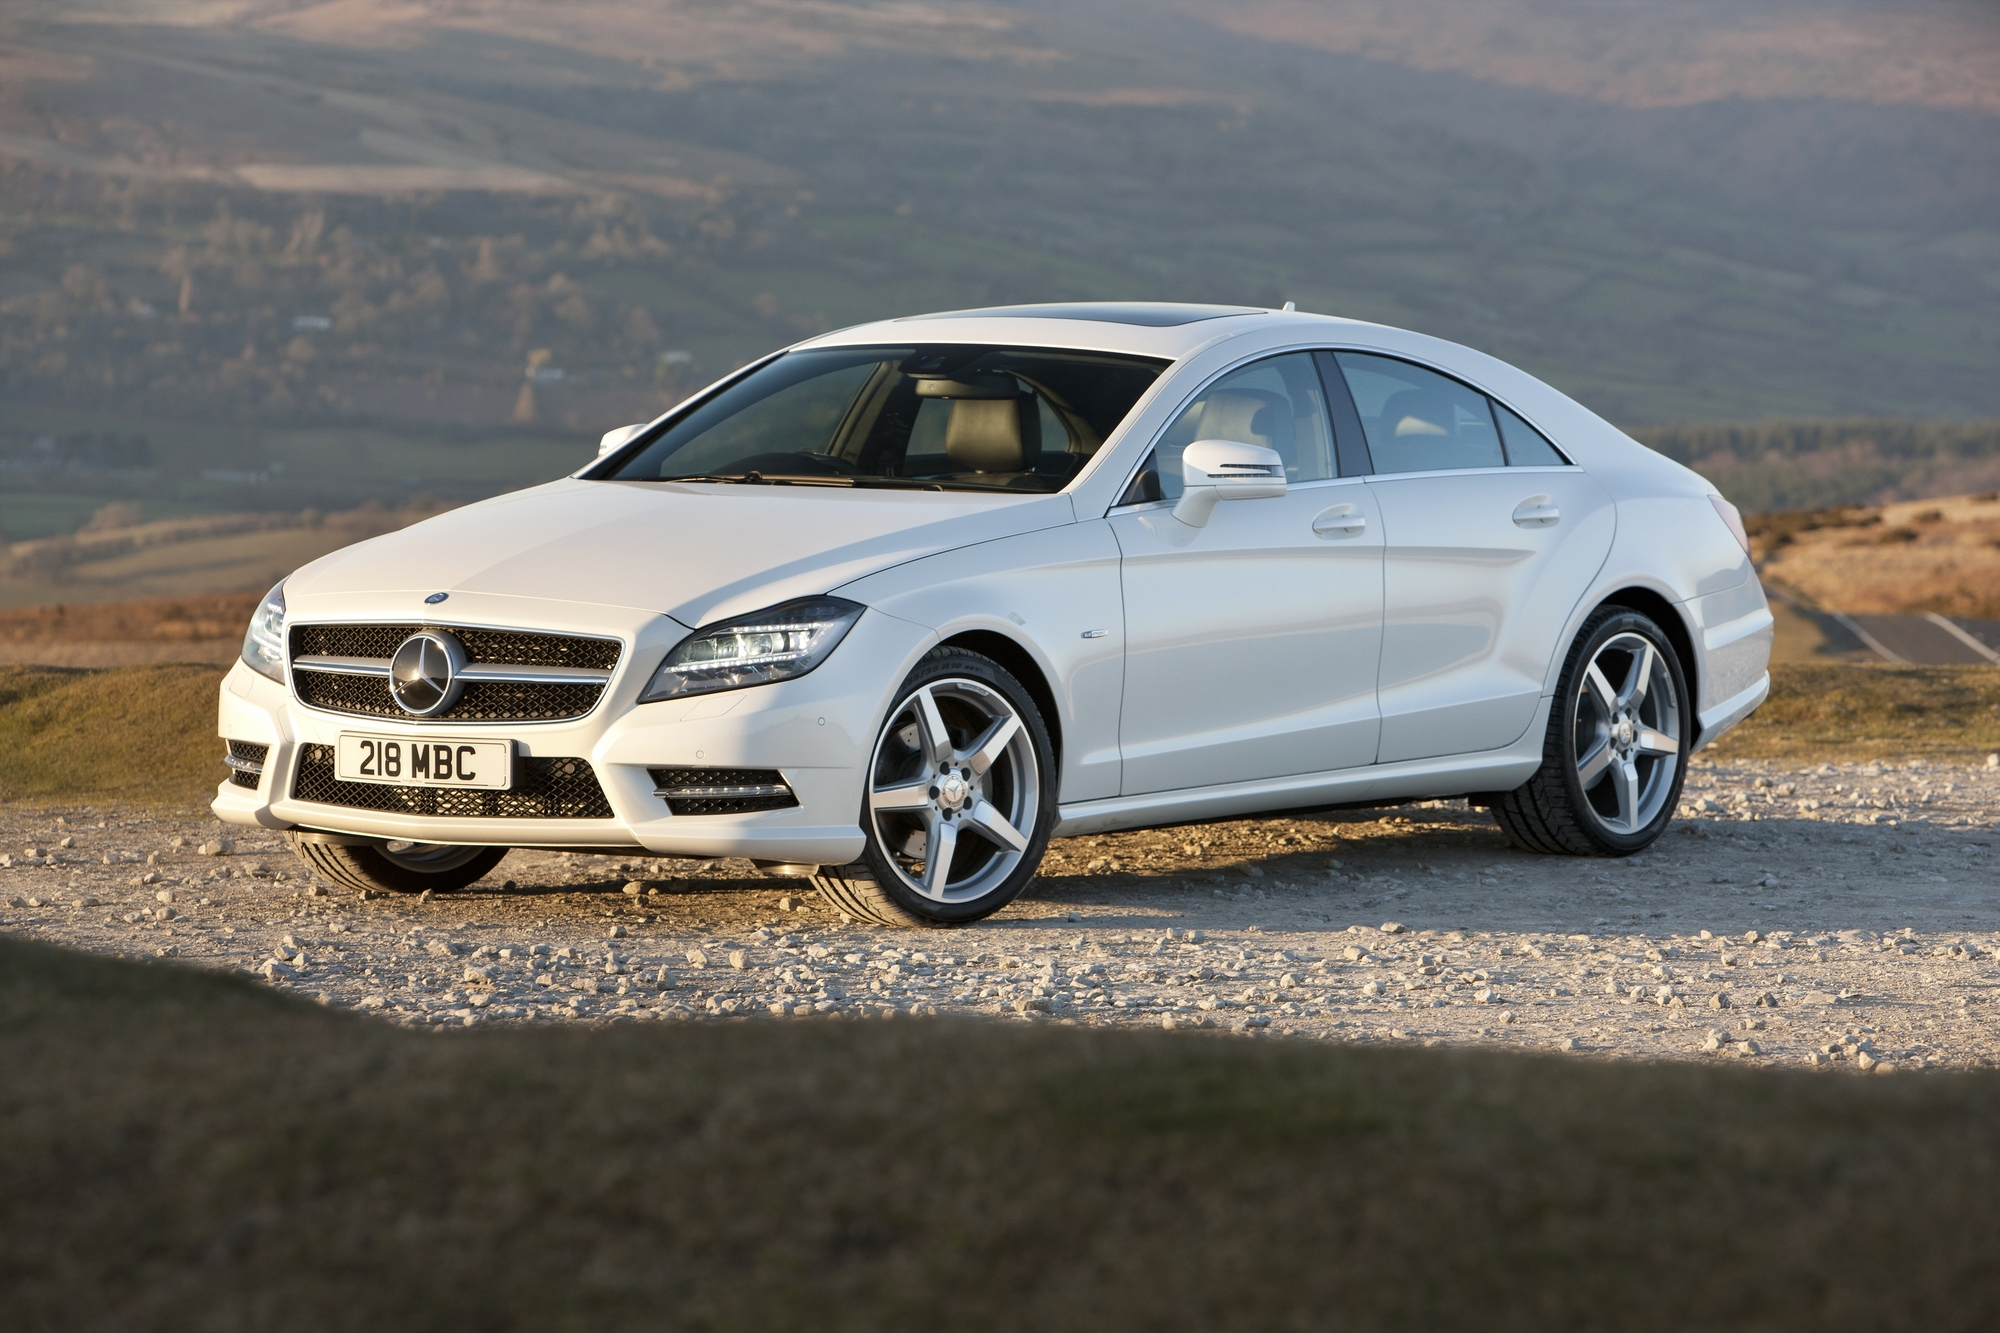 Mercedes benz cls 250 cdi blueefficiency sport slideshow for Mercedes benz cls 250 price